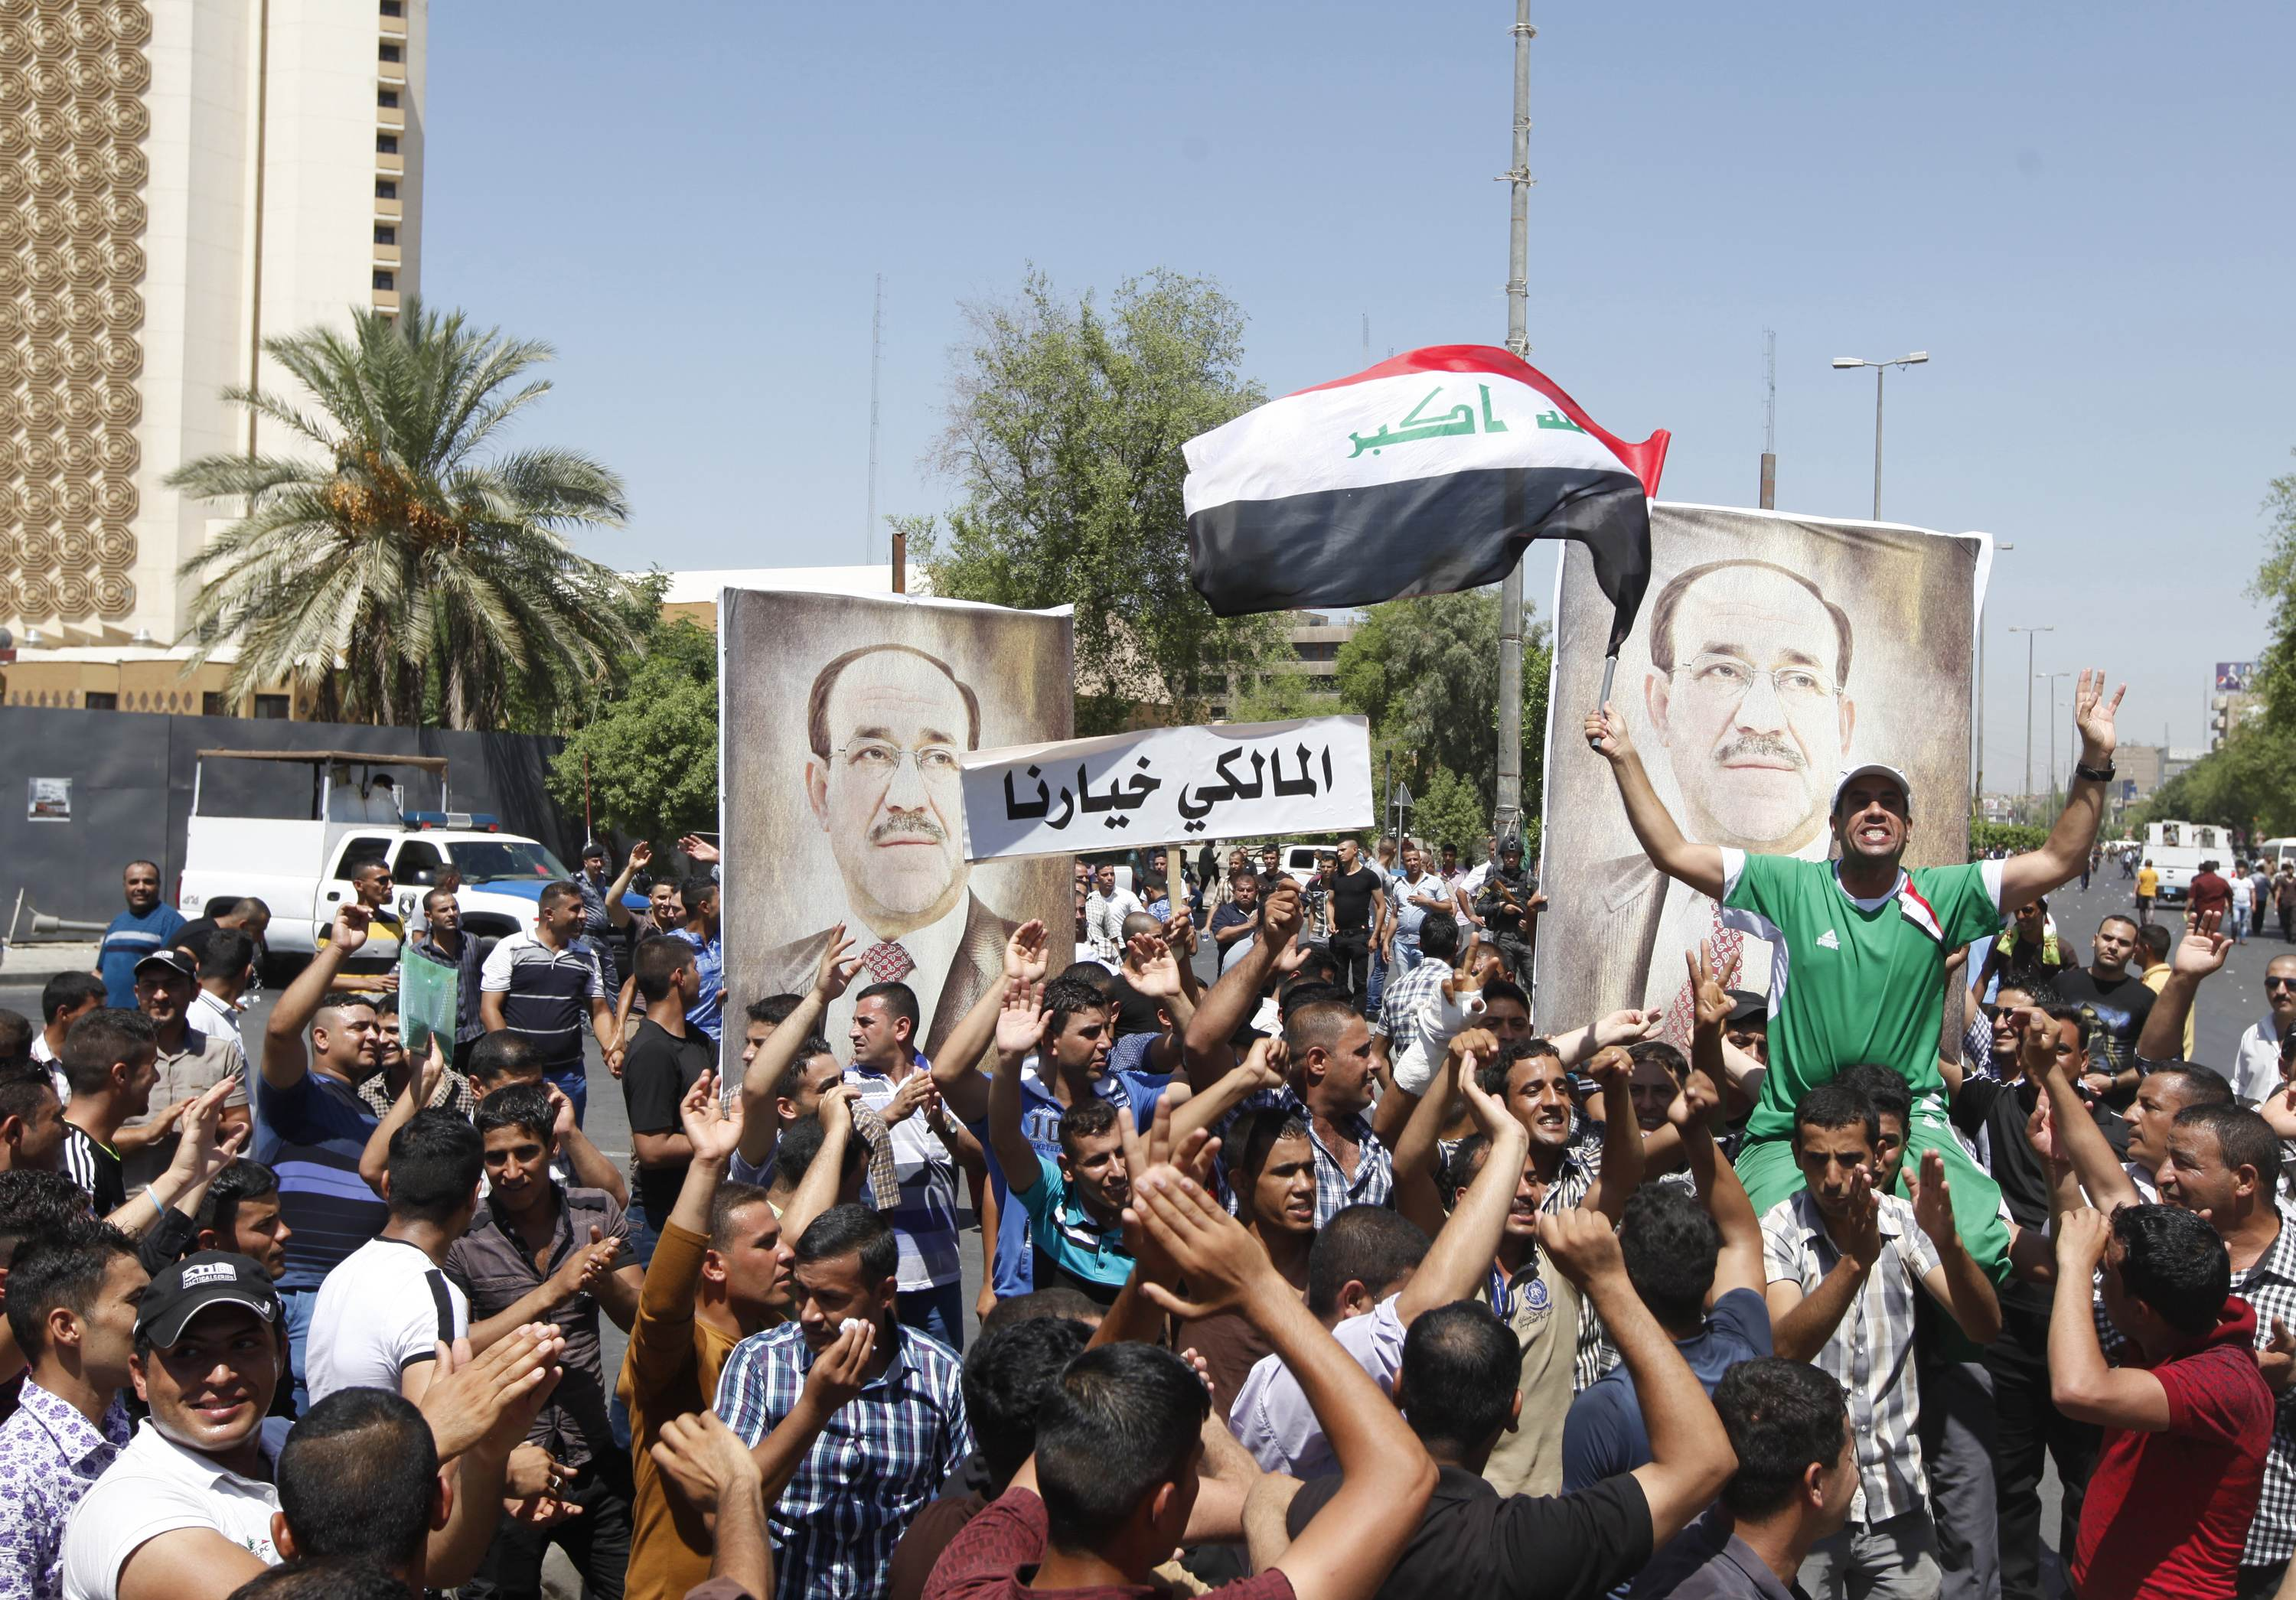 People with portraits of Iraqi Prime Minister Nouri al-Maliki gather at a rally in support of him in Baghdad August 11, 2014.